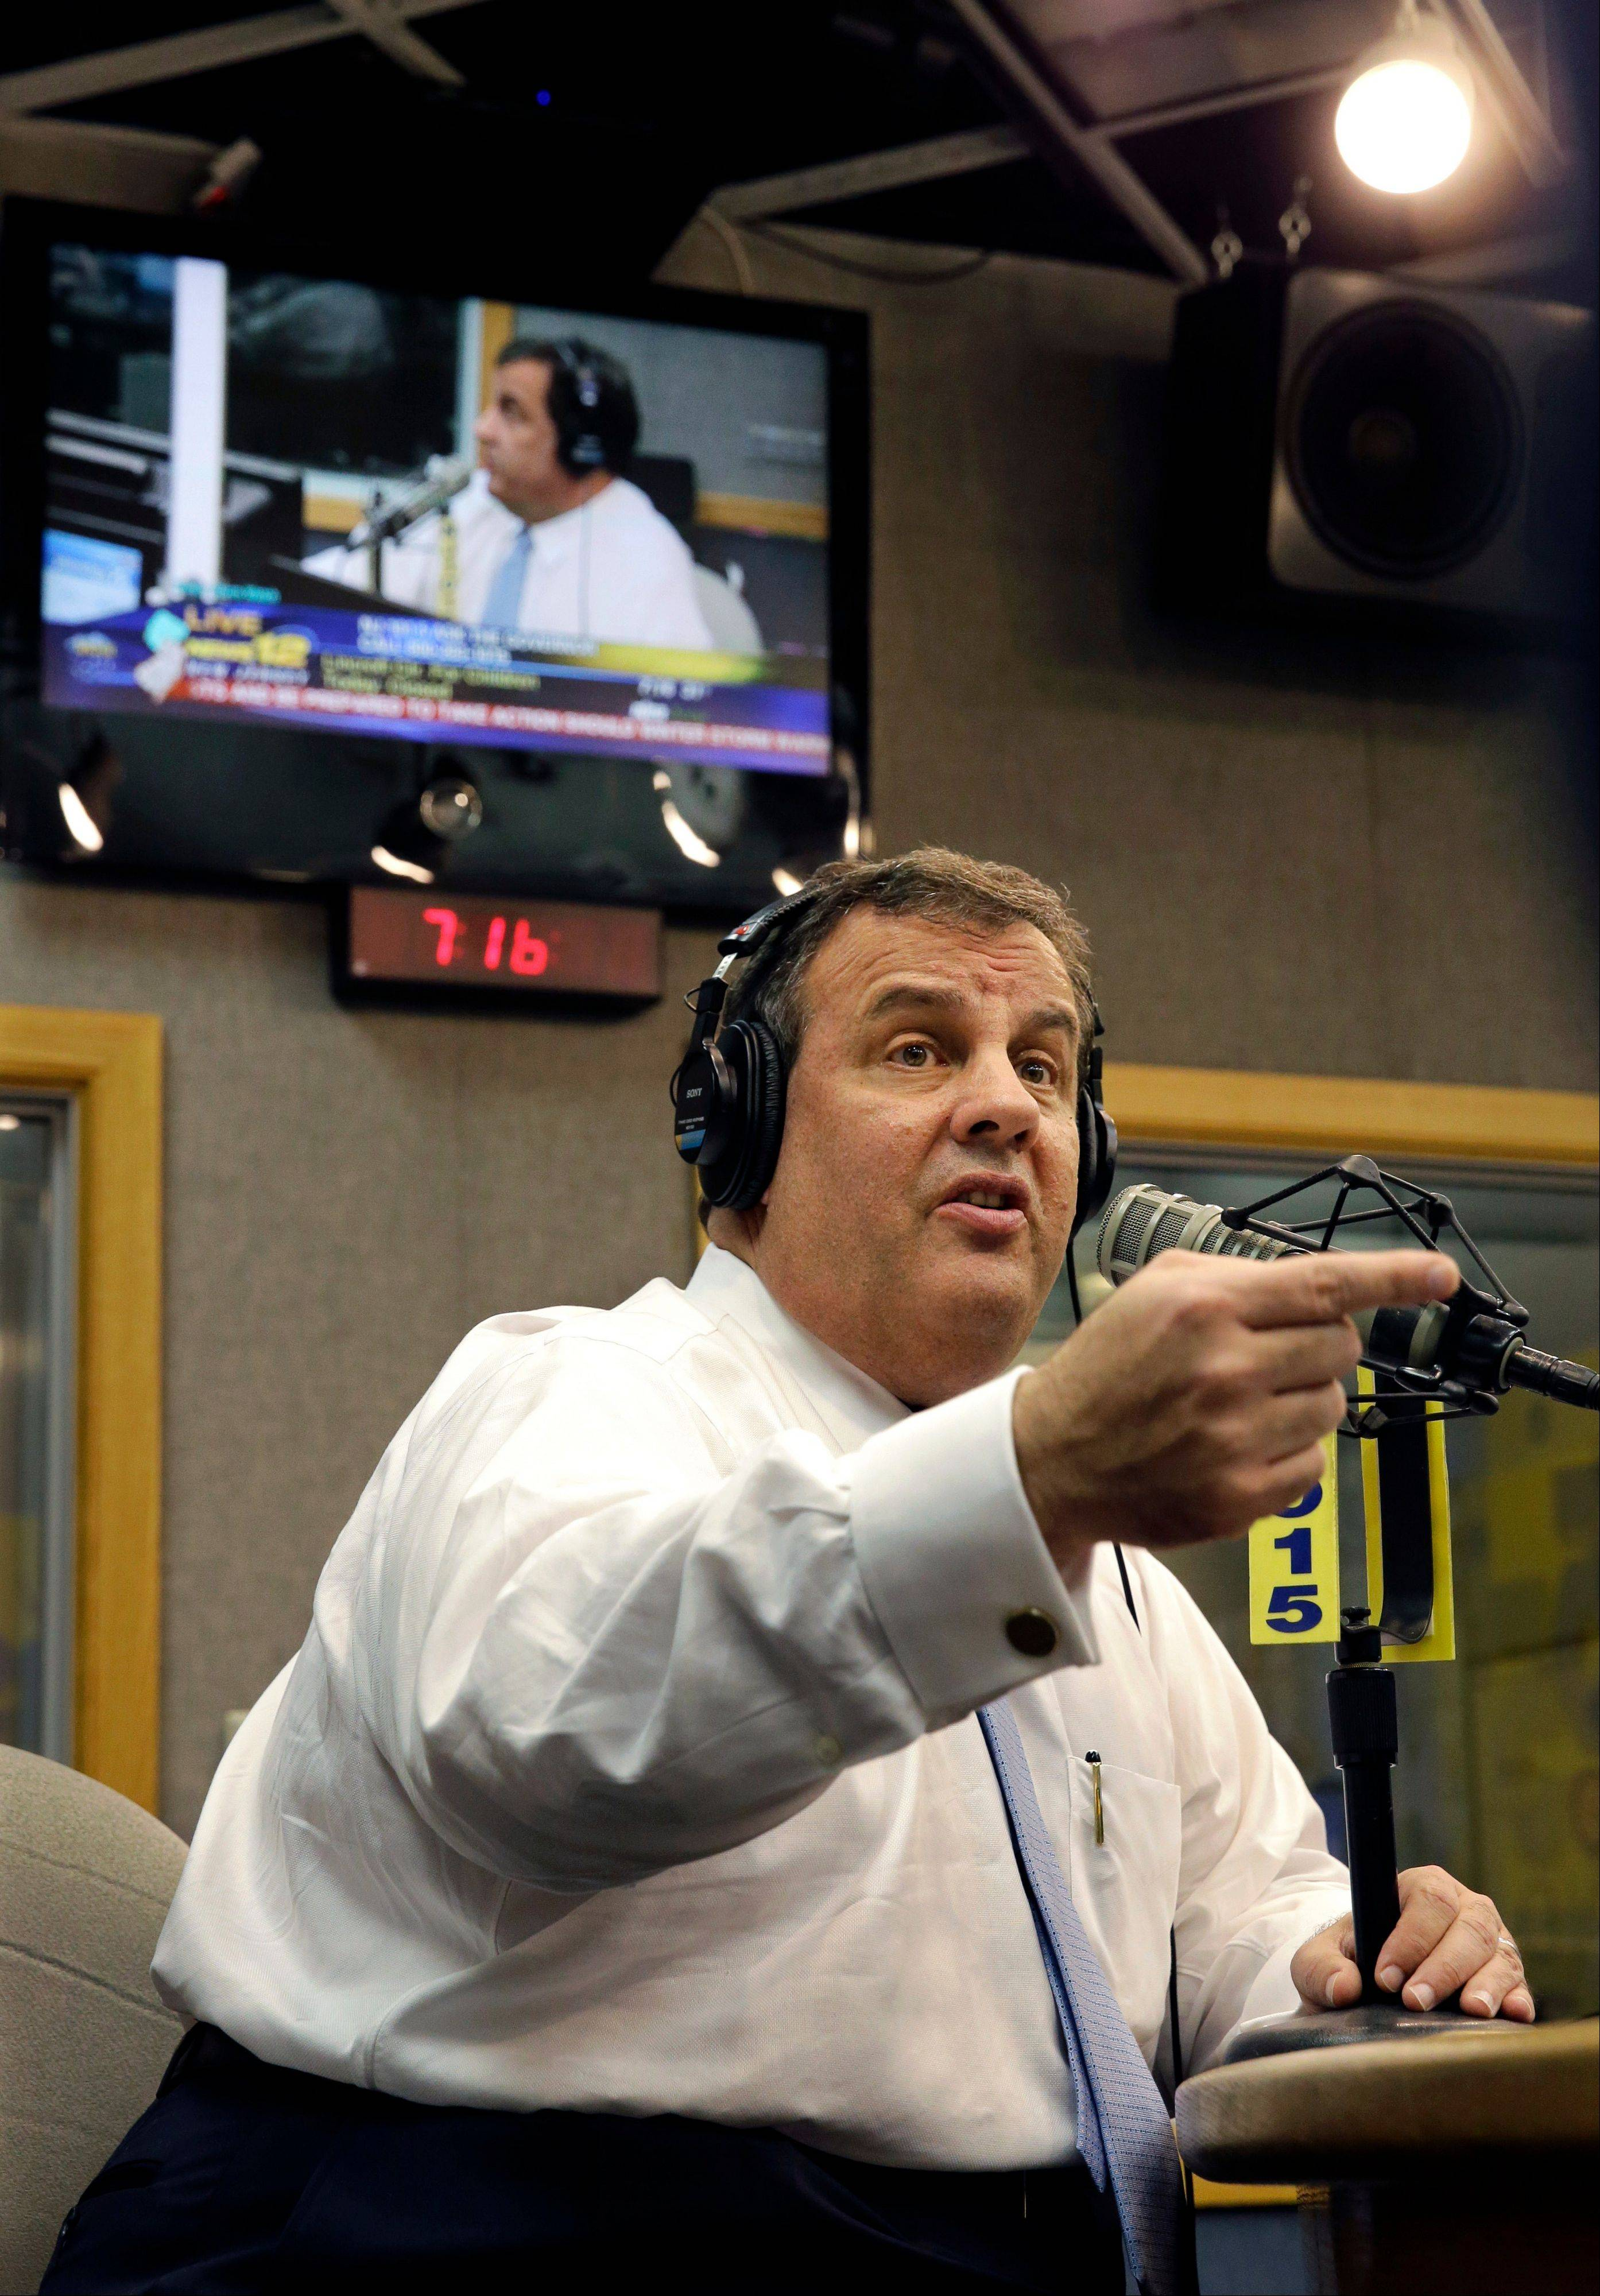 New Jersey Gov. Chris Christie sits in a studio during his radio program, �Ask the Governor� broadcast on NJ 101.5, Monday, Feb. 3, 2014, in Ewing, N.J. During the program, Christie took questions from callers for the first time in more than three weeks as his campaign looked for a way to pay for lawyers as a political payback scandal continues.